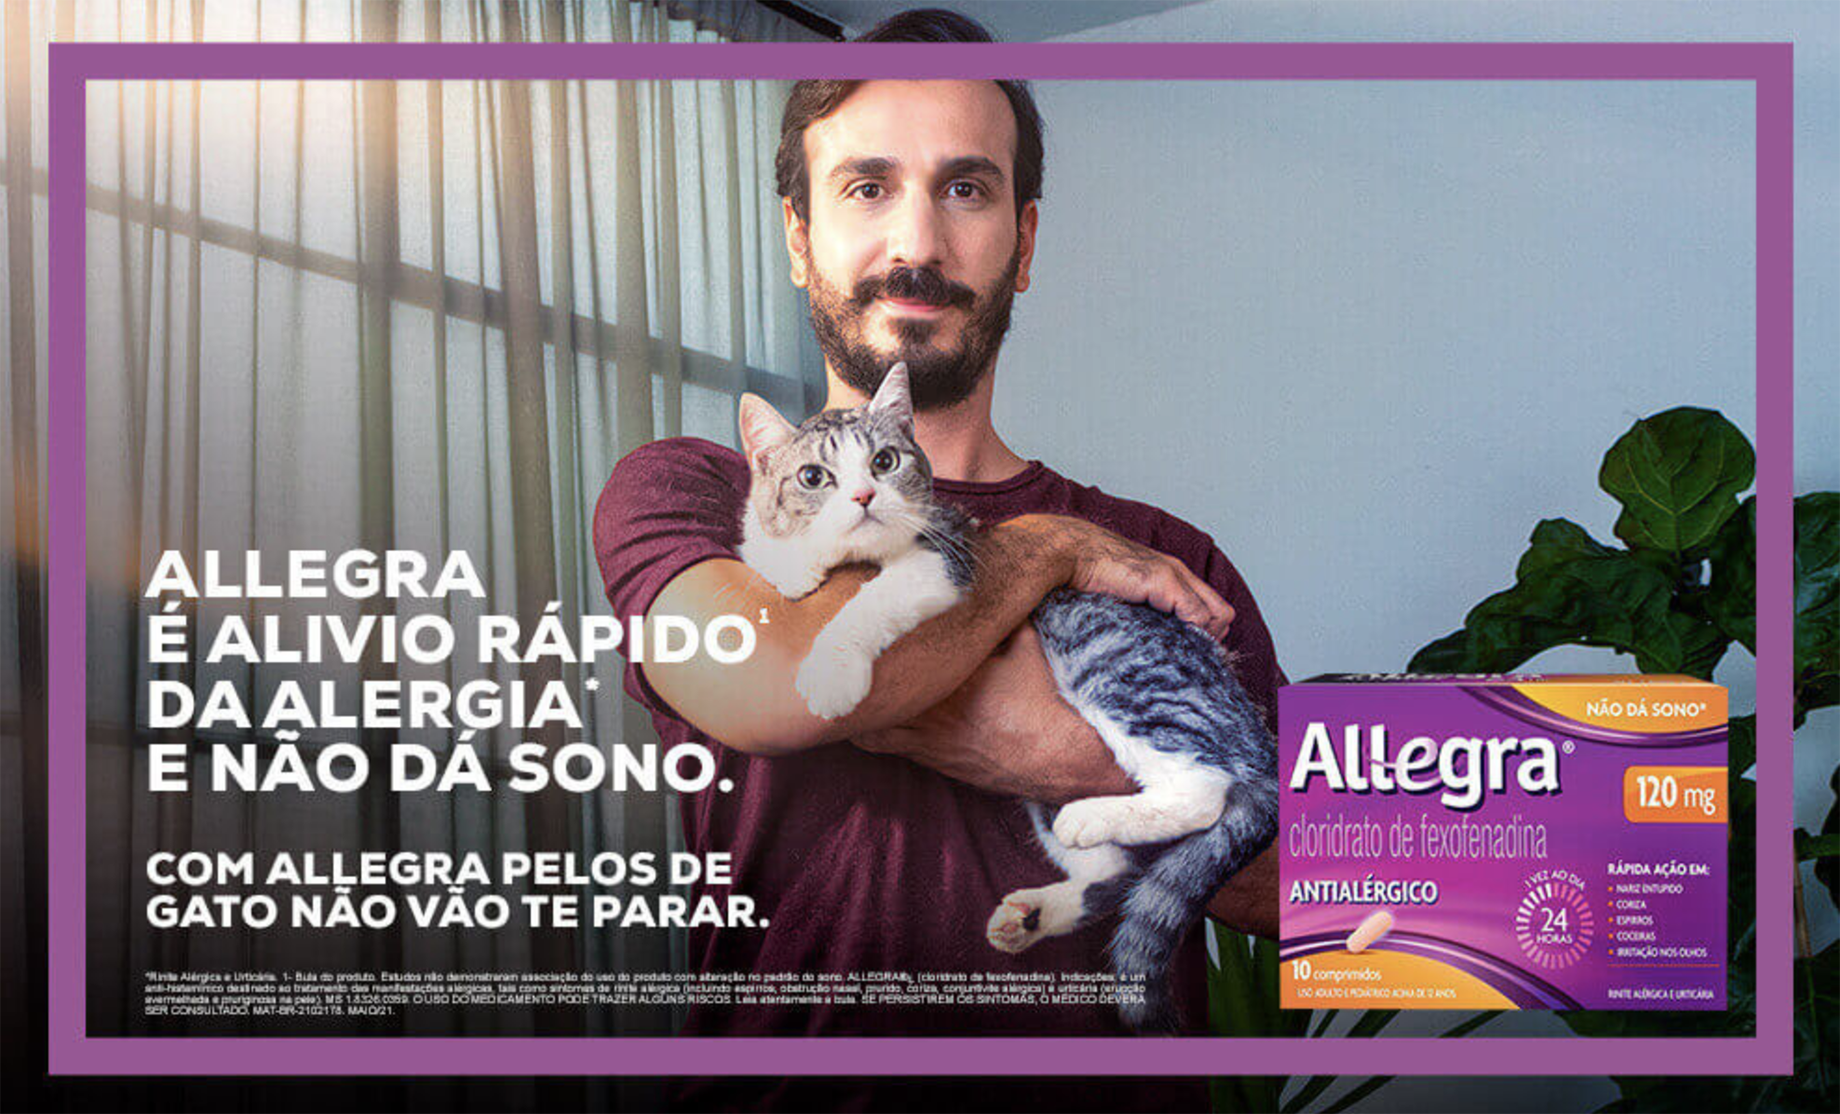 Tear sheet of man holding cat for Allegra campaign shot by Claus Lehmann